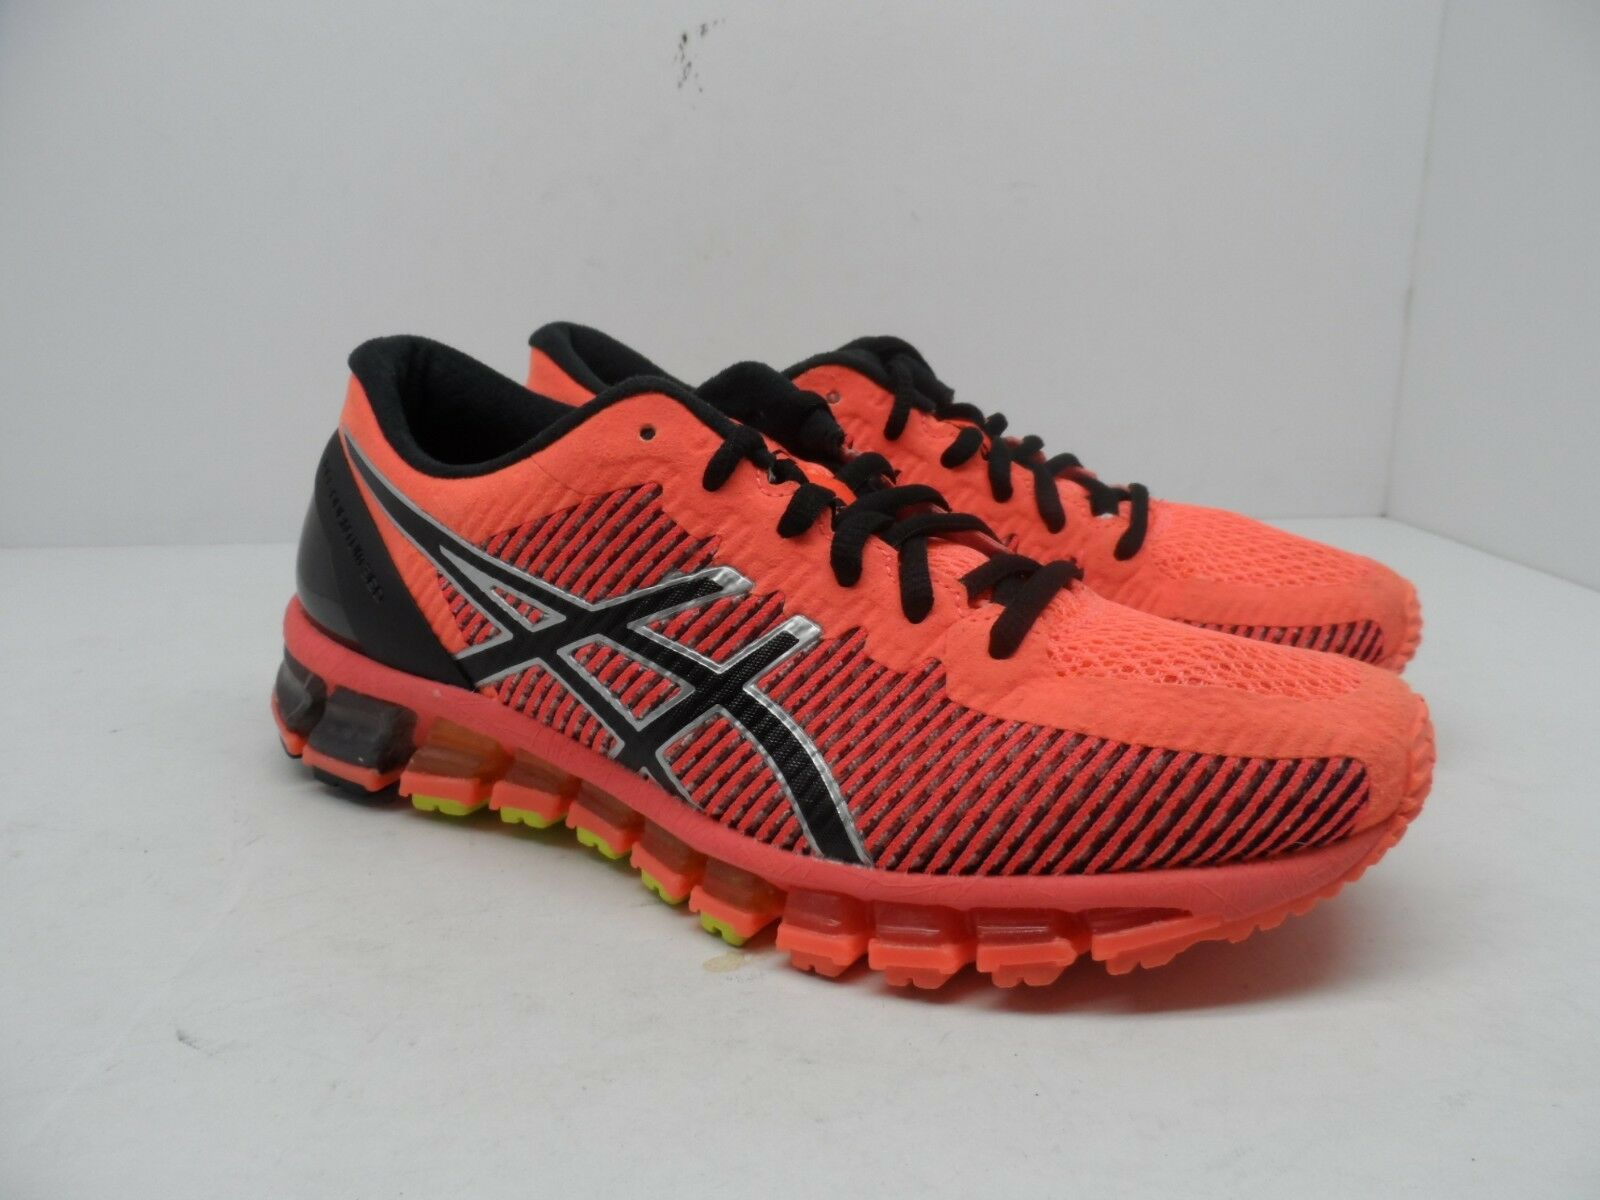 Asics Women's GEL-Quantum 360 CM Running Shoe T6G6N Flash Coral/Black Comfortable The most popular shoes for men and women